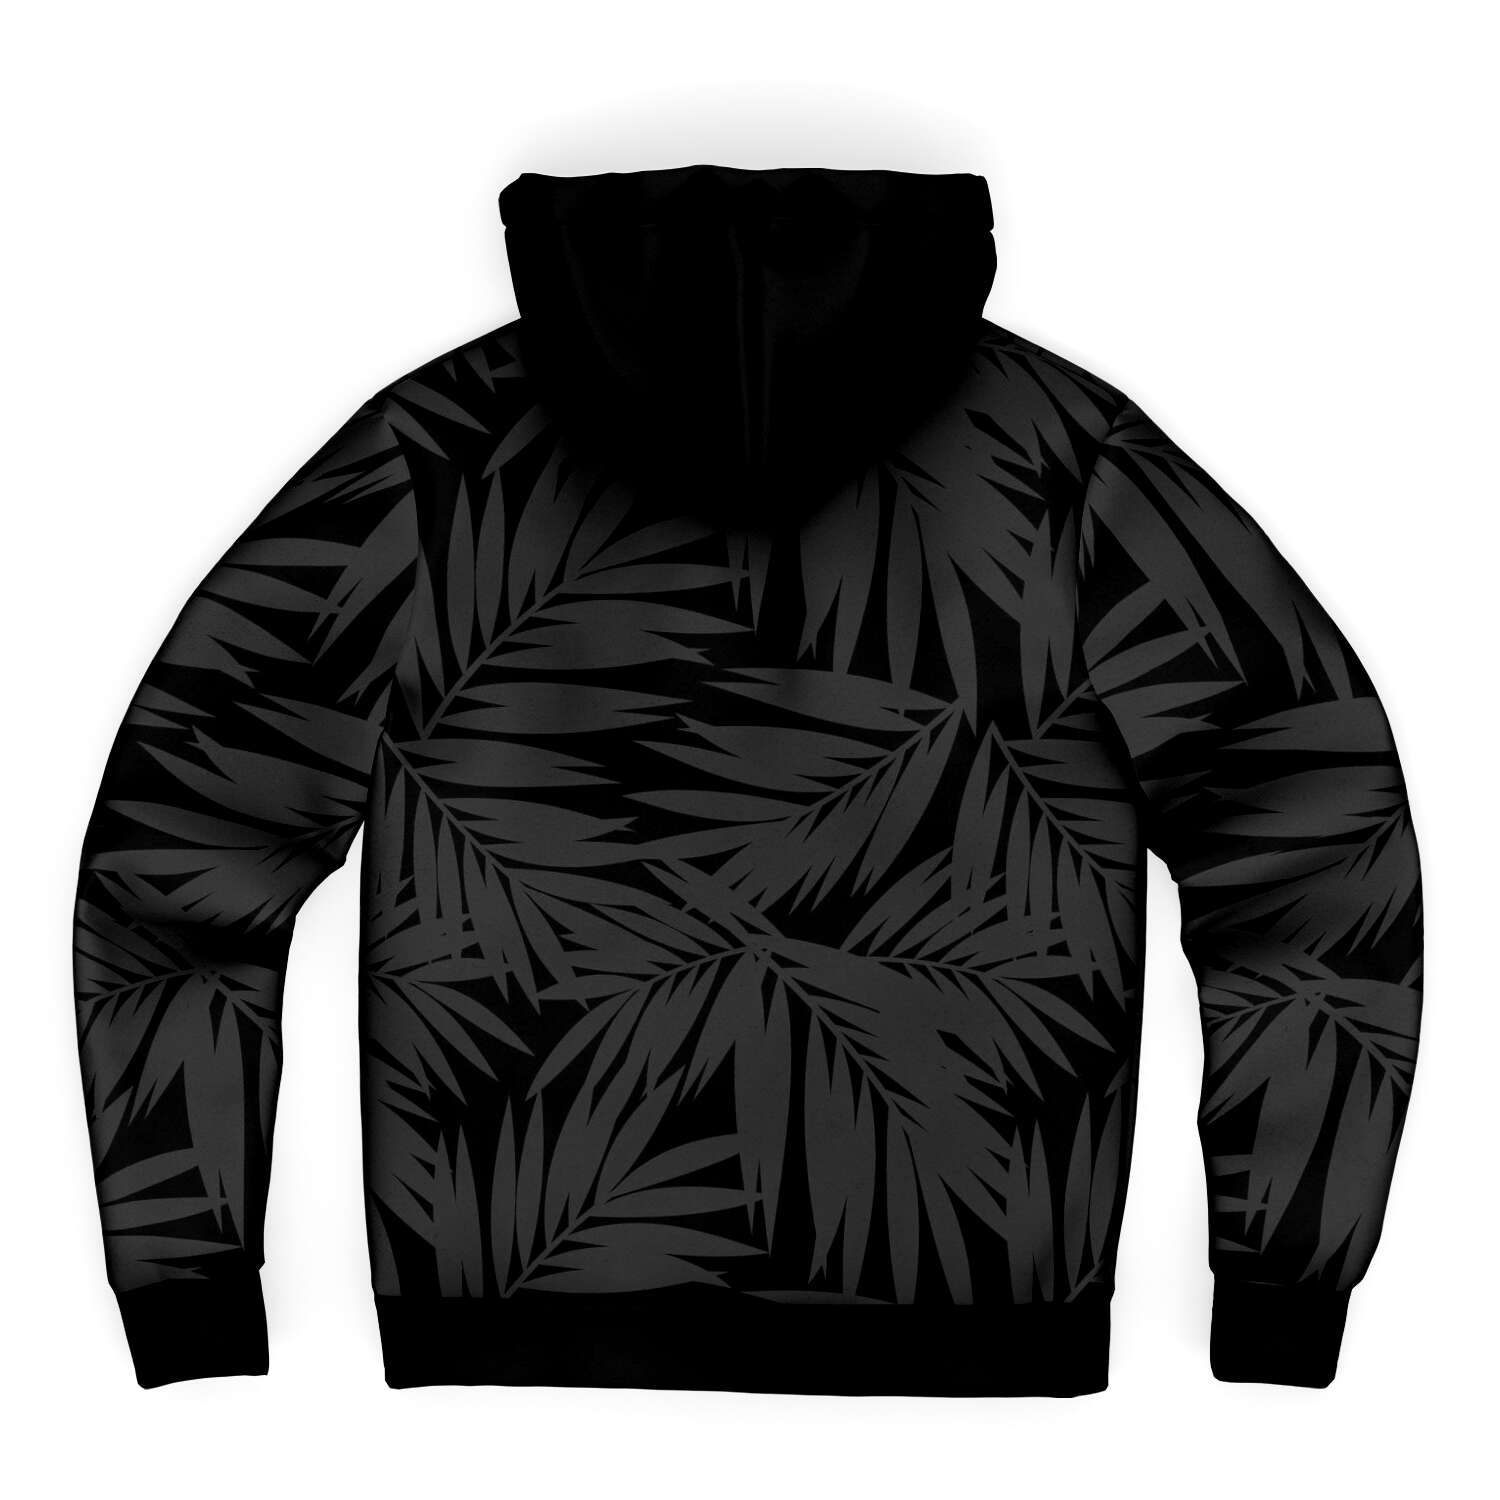 Hafa Adai Coconut Leaves Guam CNMI Black Microfleece Hoodie Jacket